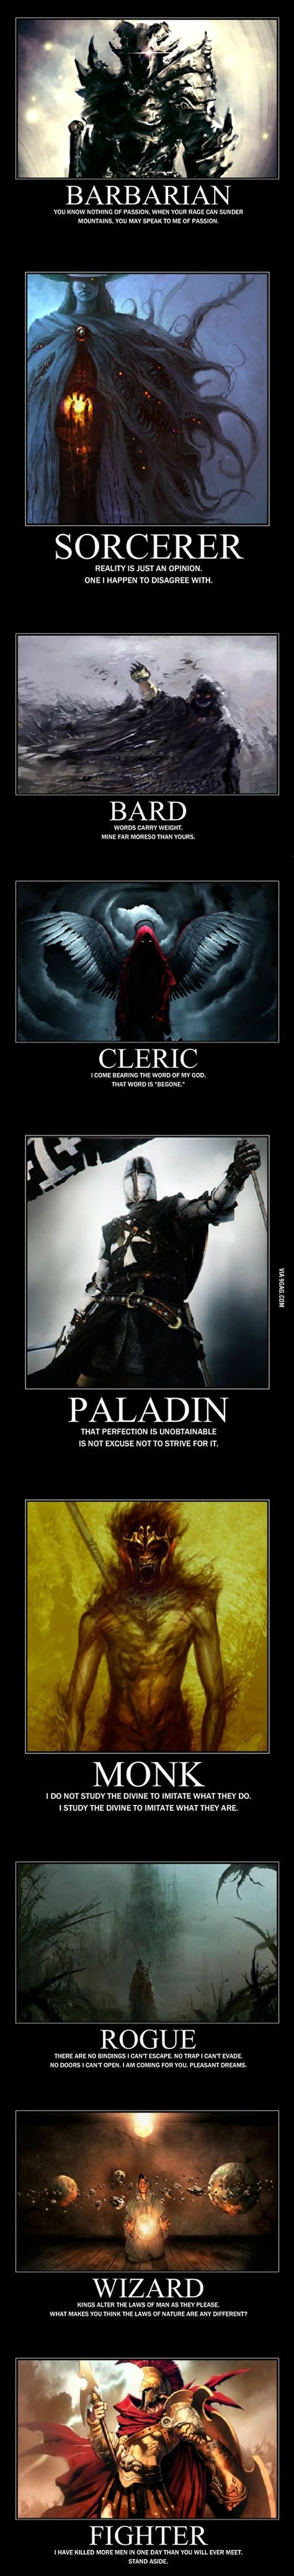 If i had to choose, monk, rogue, or paladin. Those 3 have always been my favorite 3 class in any game with a class system